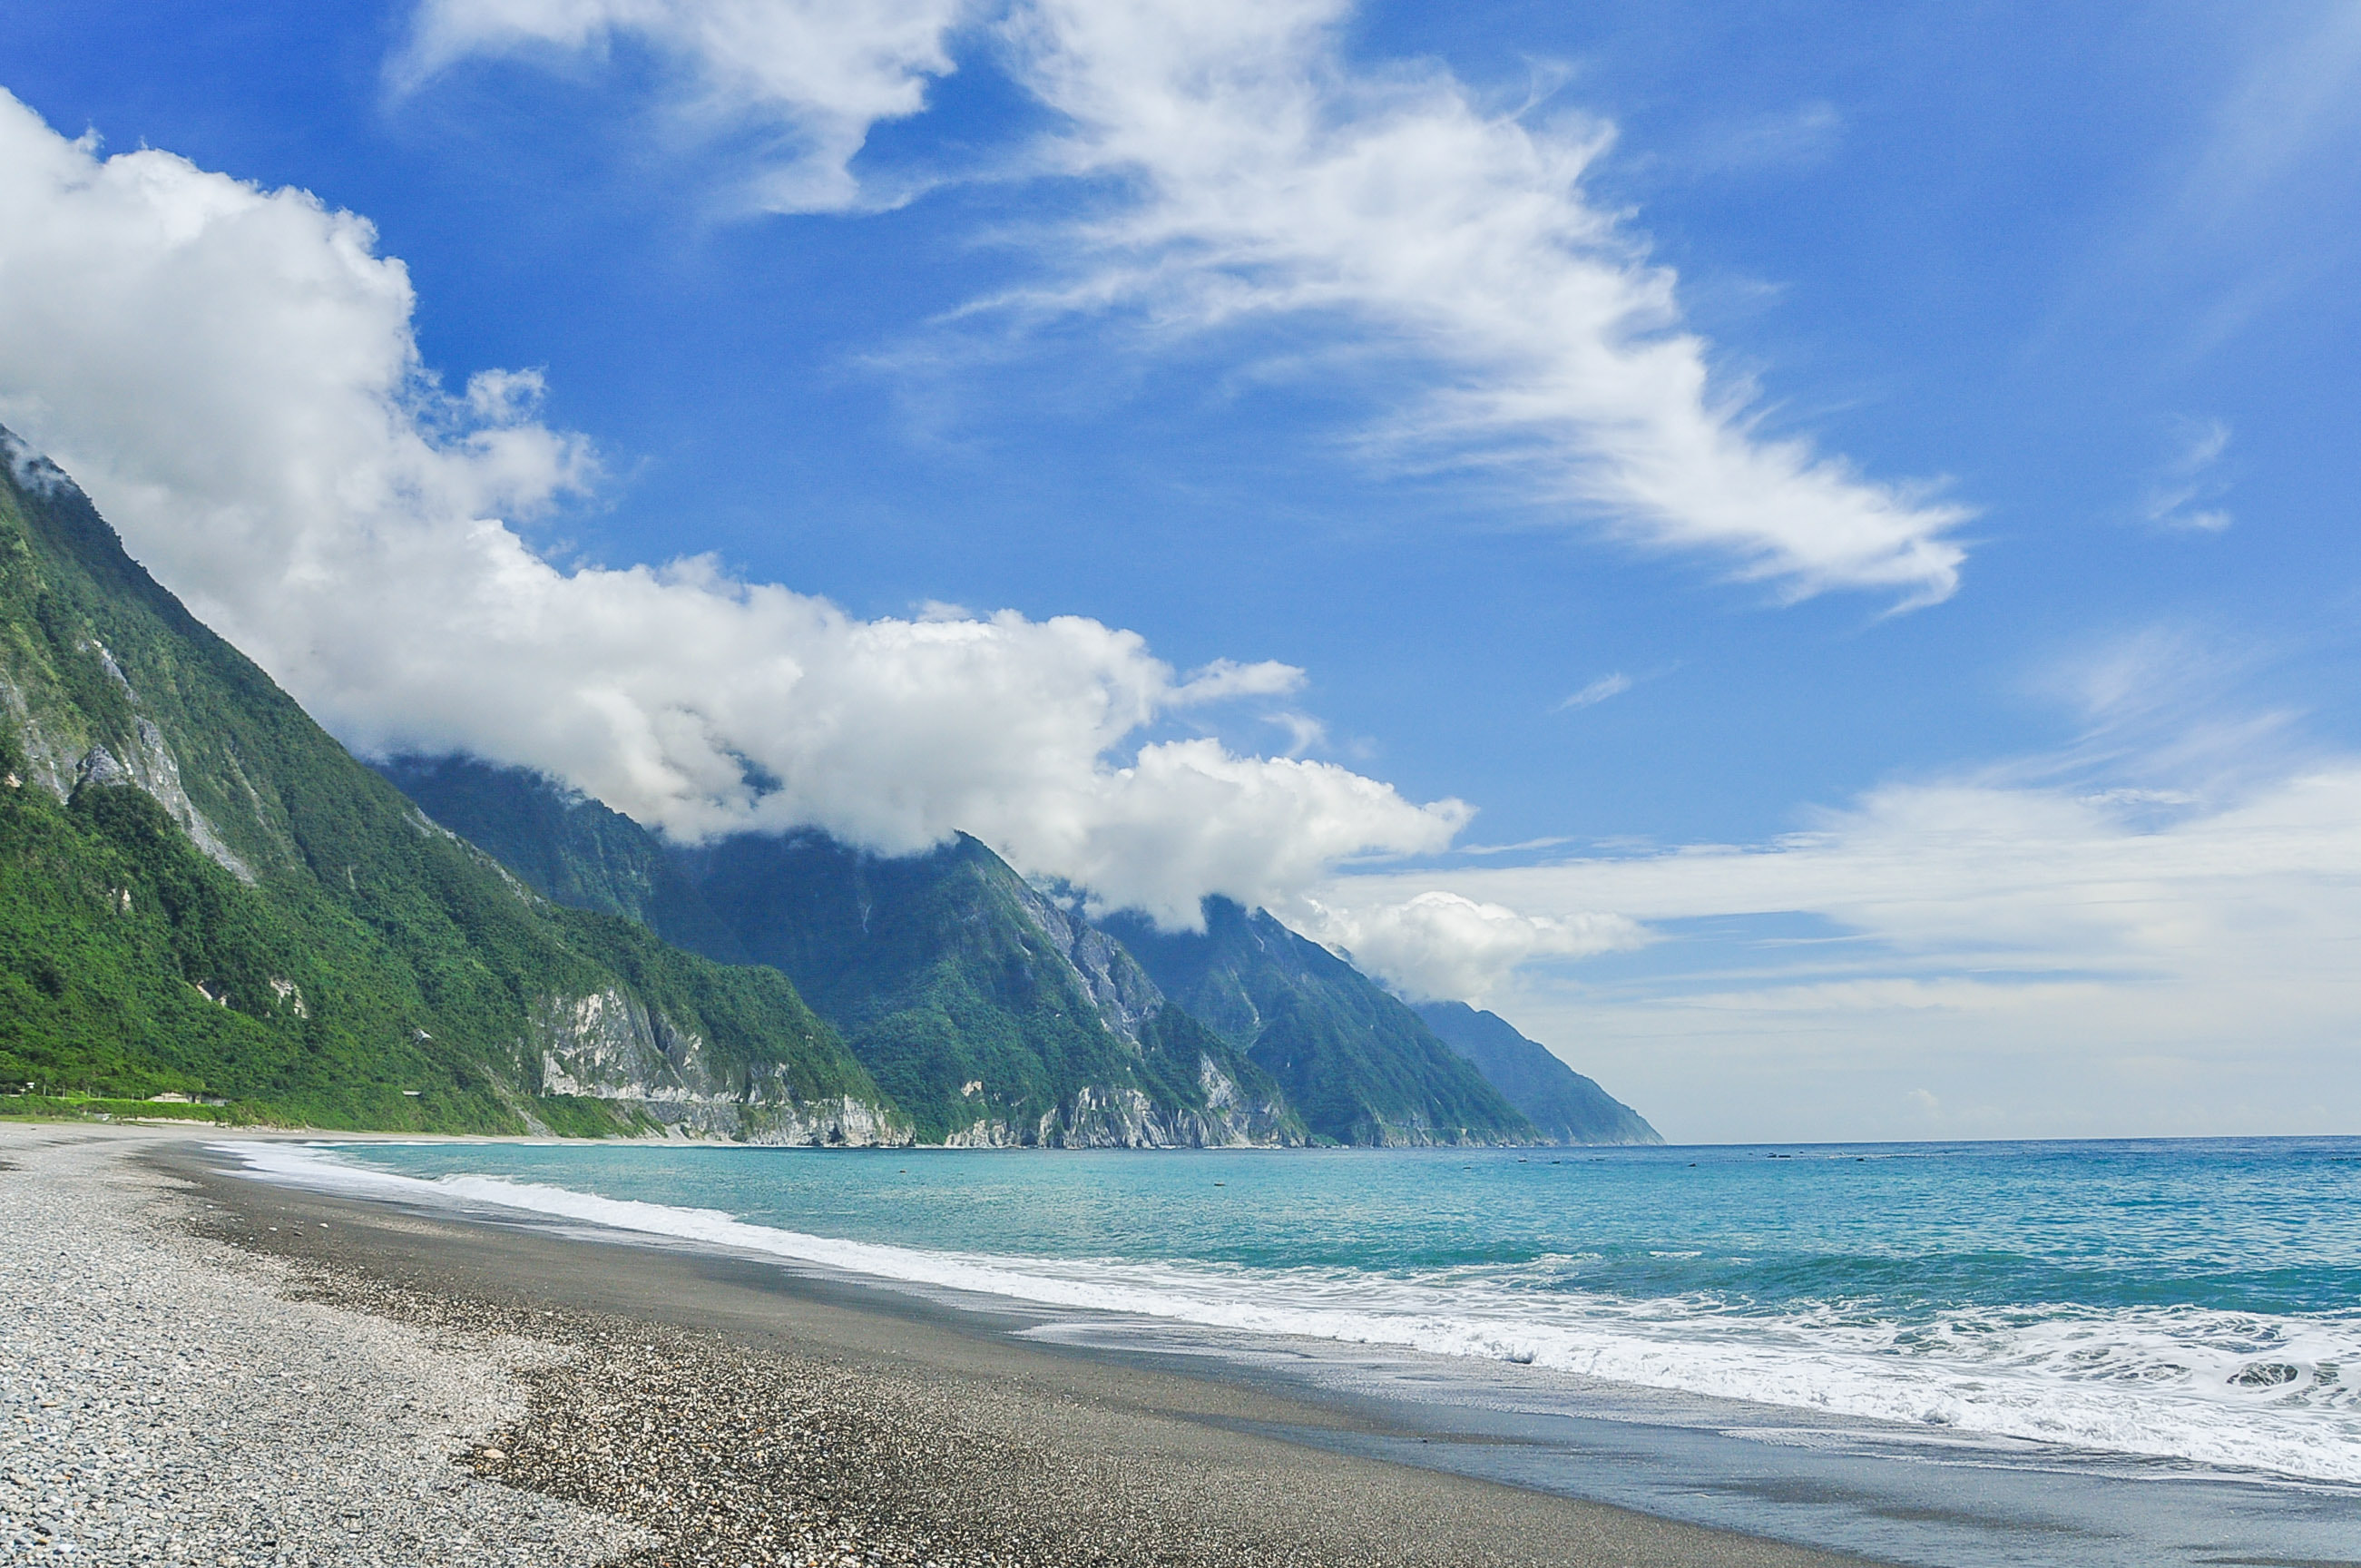 Taroko Gorge and Farglory Ocean Park 2-Day Tour from Hualien